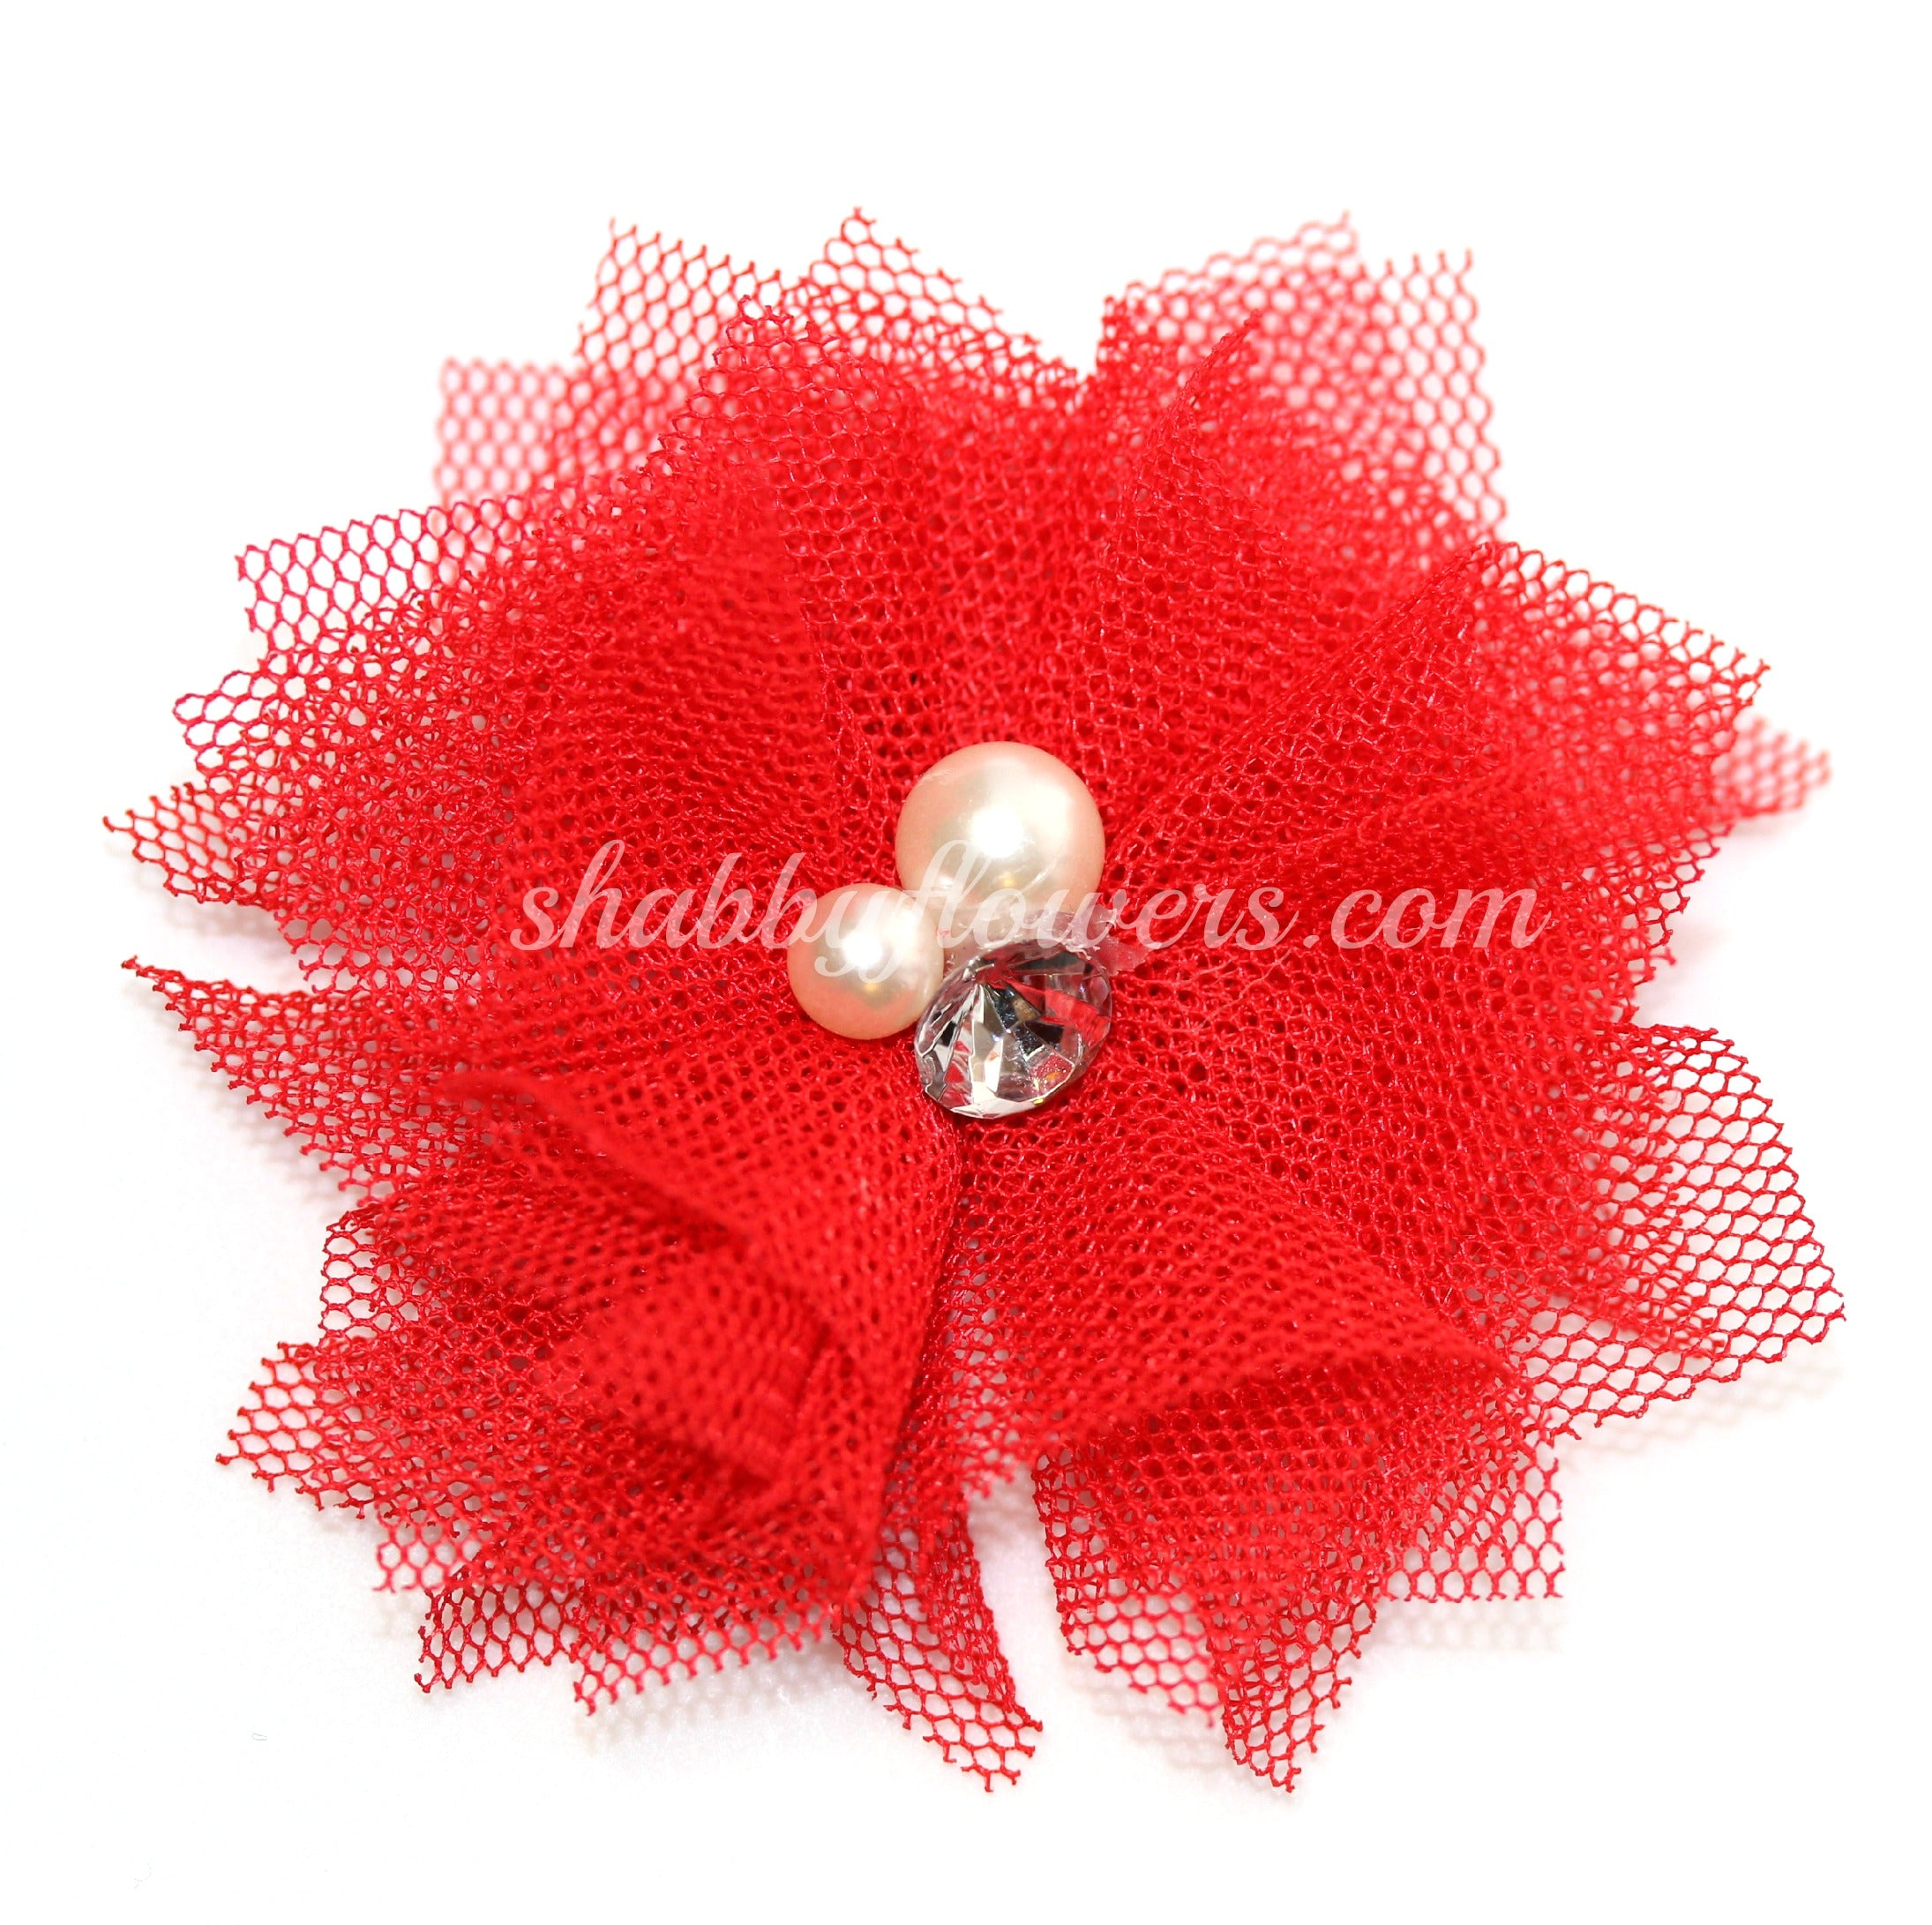 Tulle Pearl Flower - Red - shabbyflowers.com